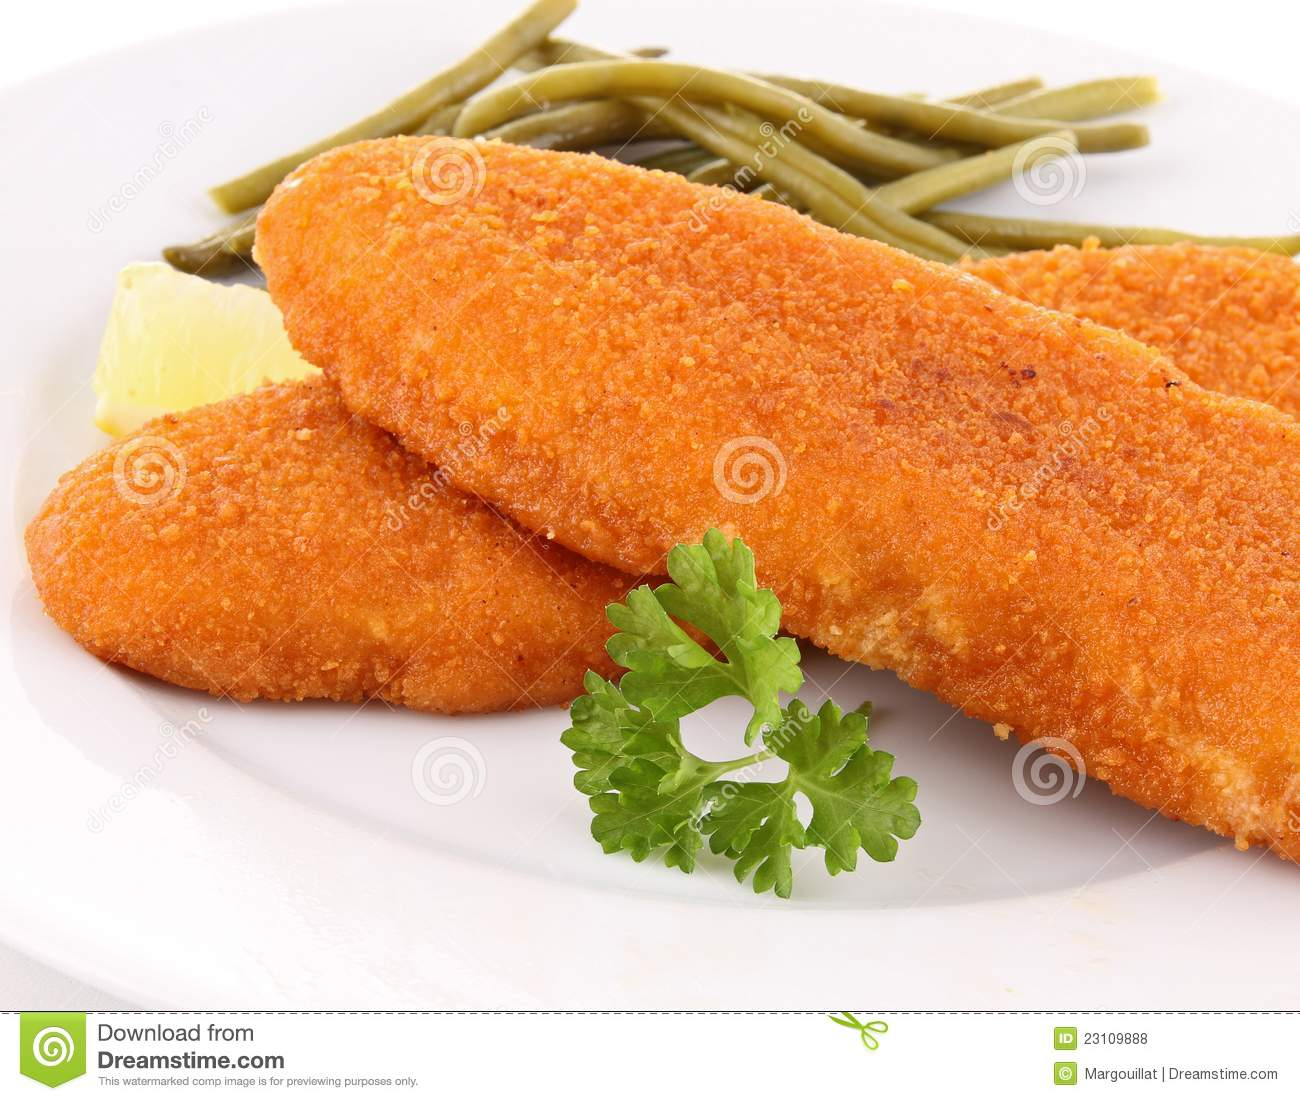 Breaded fish royalty free stock photos image 23109888 for How to make breaded fish